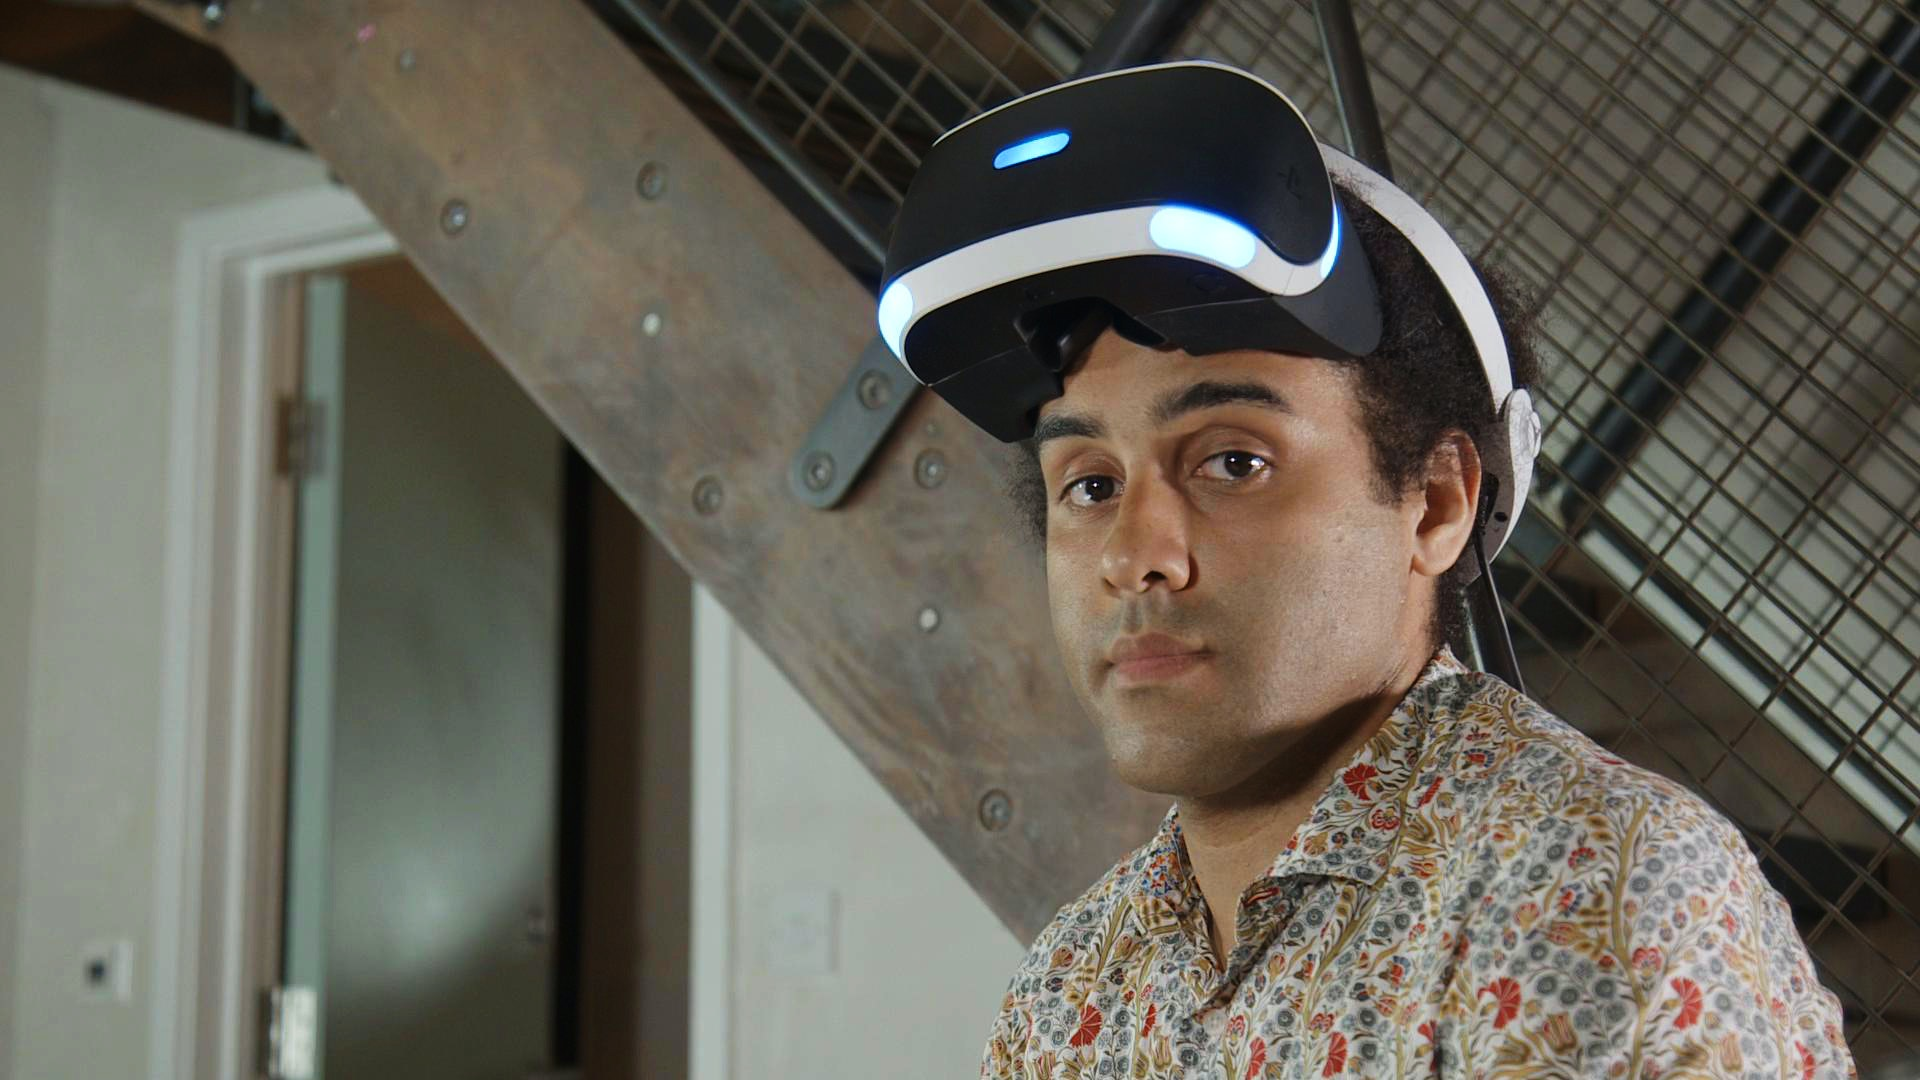 Actor Miles Mlambo galnces to camera between takes on Big Egg's Futurlab trailer shoot, wearing Sony Playstation VR headset